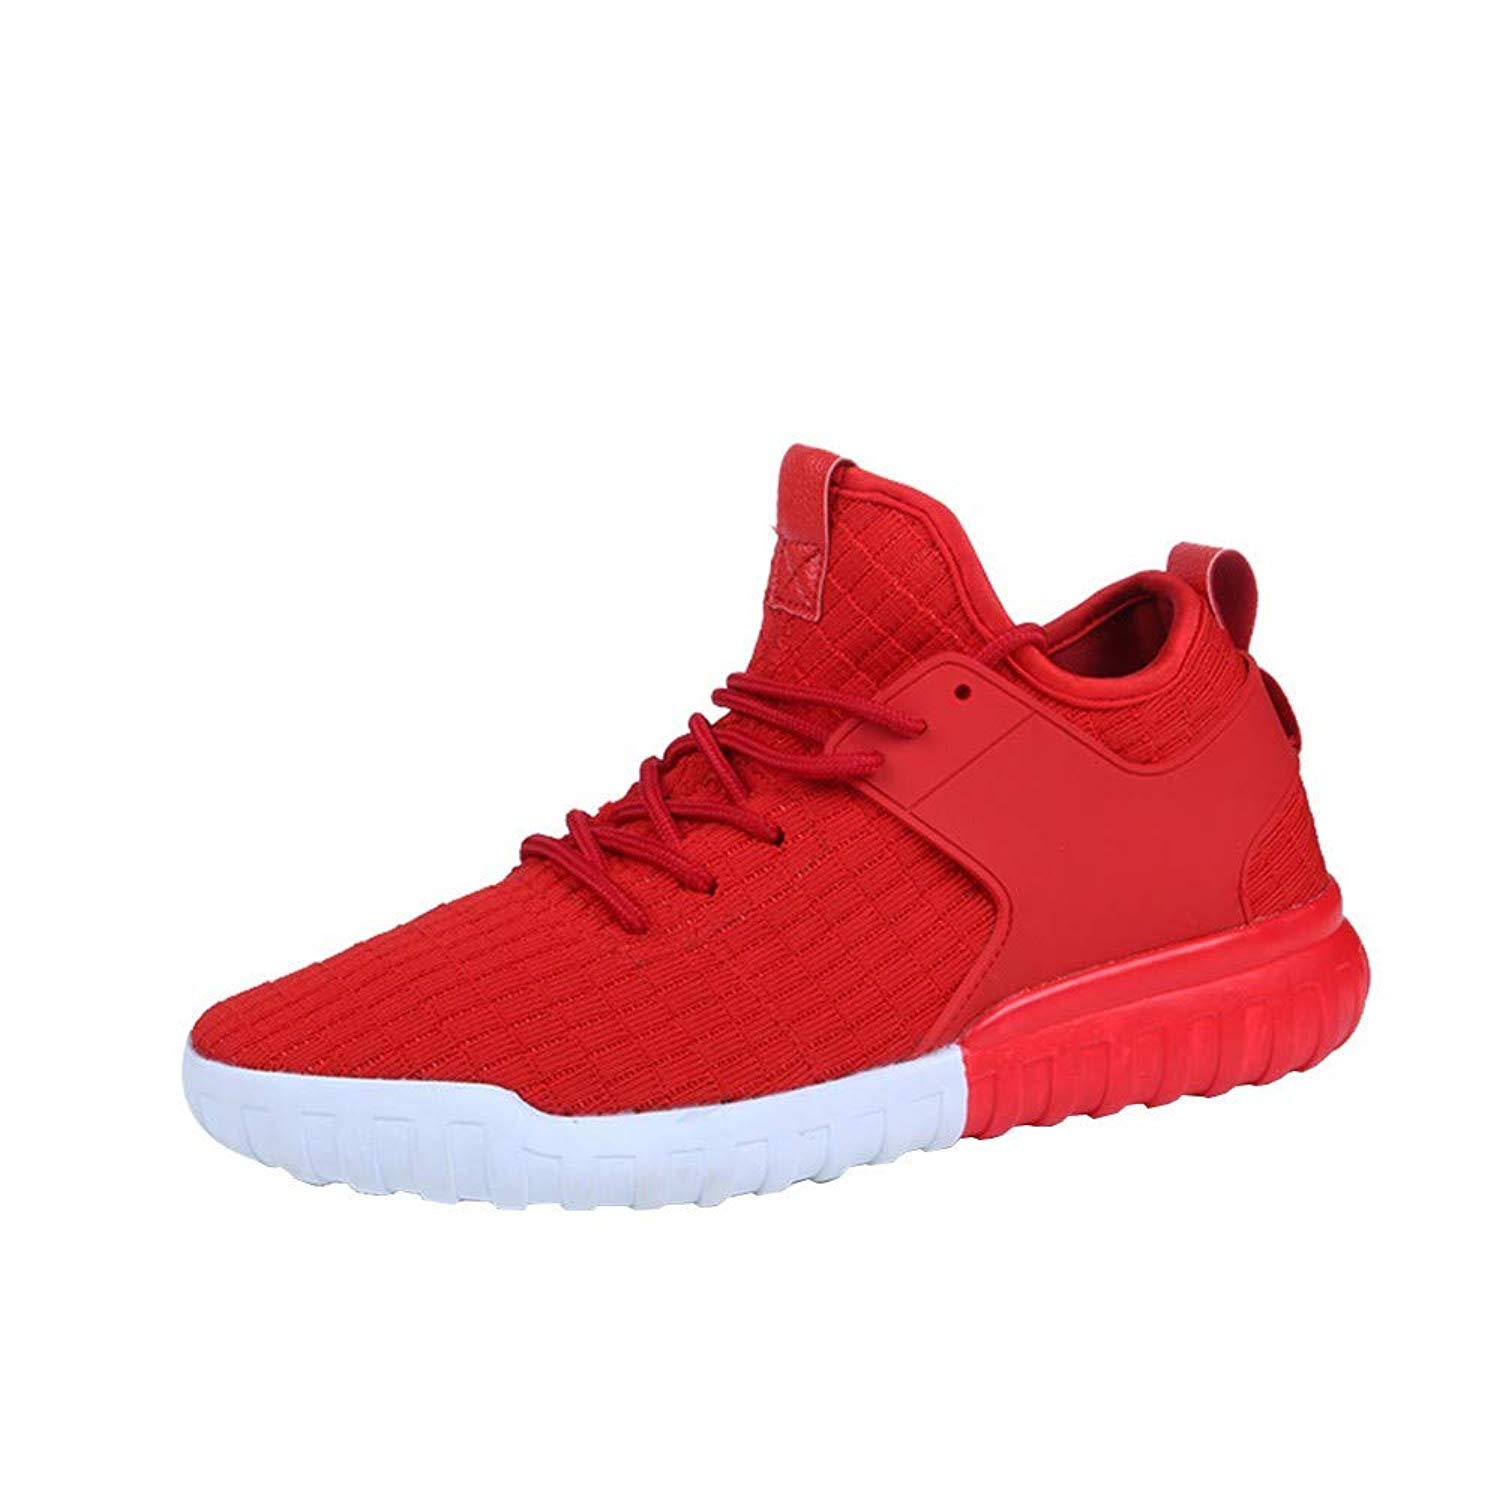 Caopixx Shoes for Men Lightweight Breathable Fashion Sneakers Walking Mesh Casual Athletic Shoes